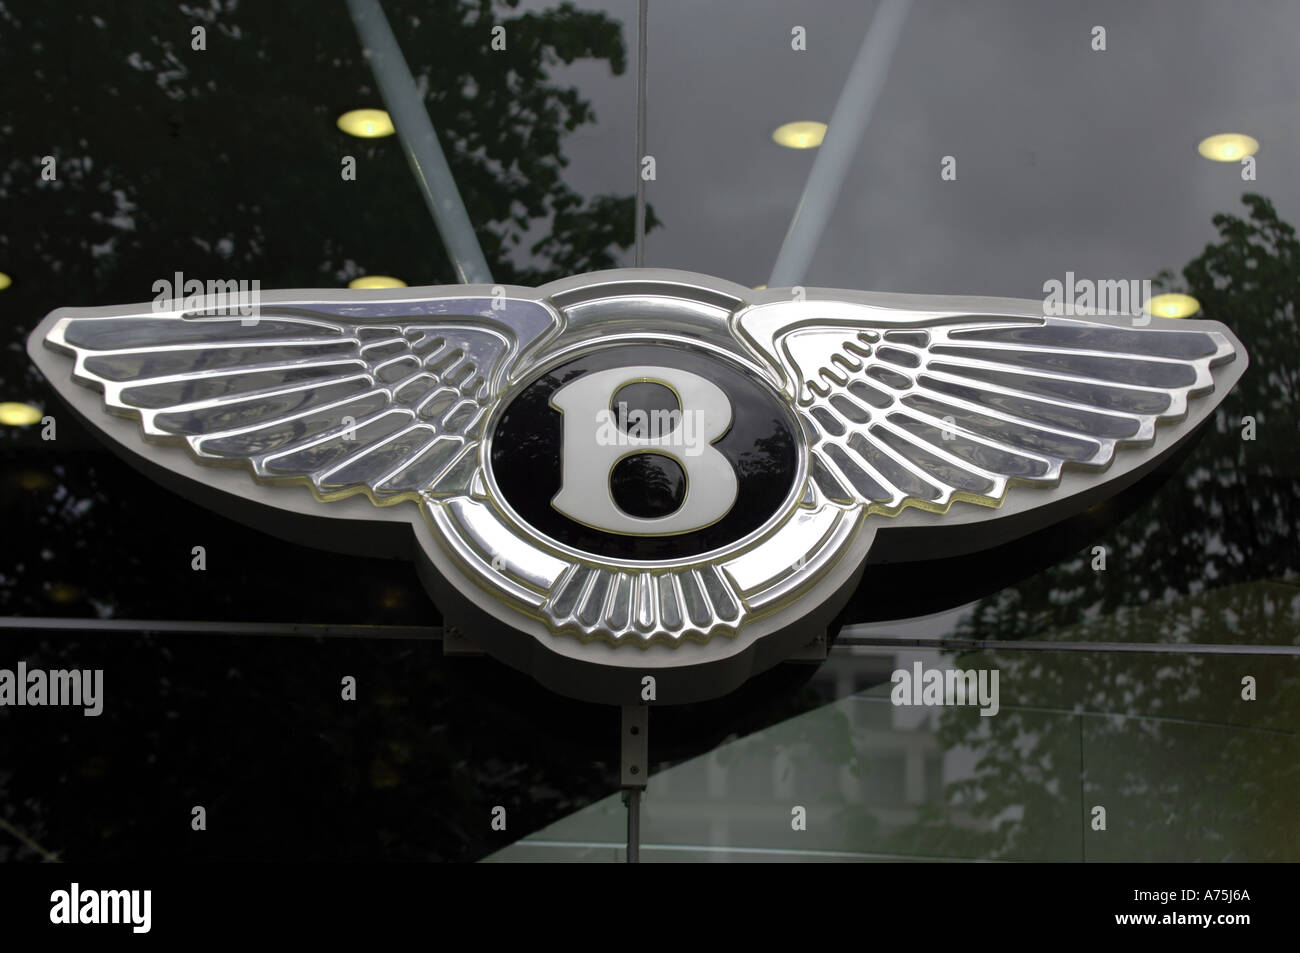 bugatti emblem stock photos bugatti emblem stock images alamy